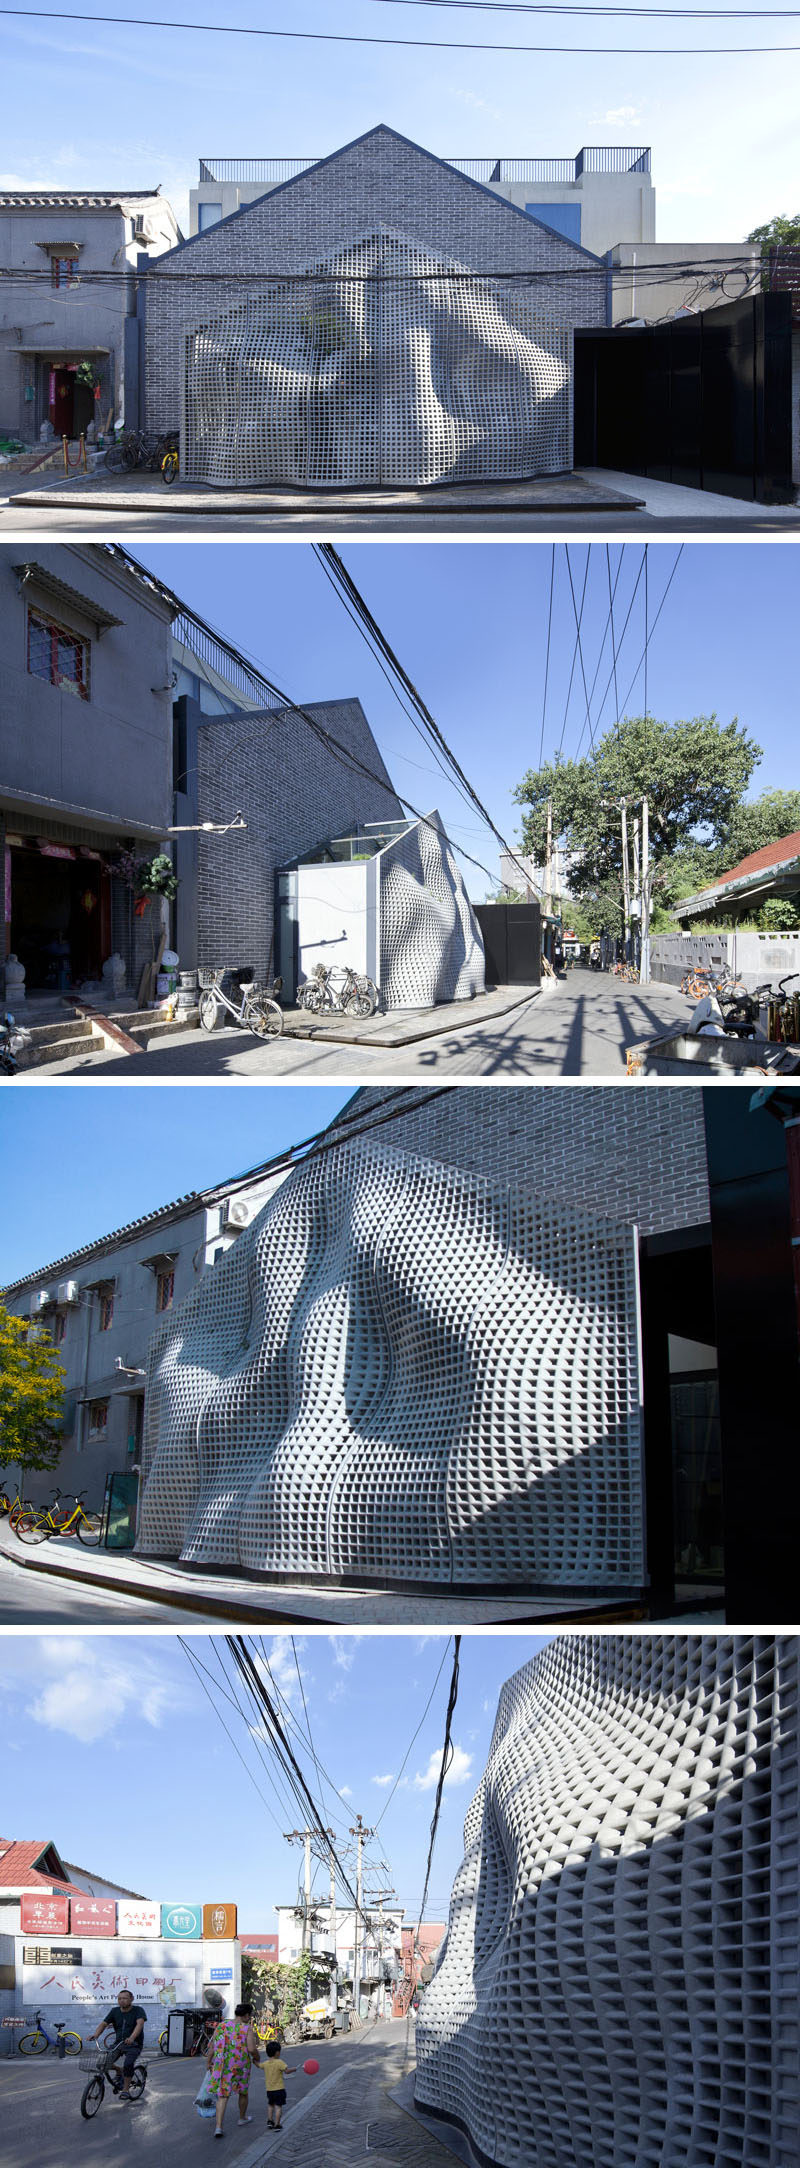 During the day, the sculptural concrete panels on this house look like a flowing piece of fabric. #SculpturalFacade #Architecture